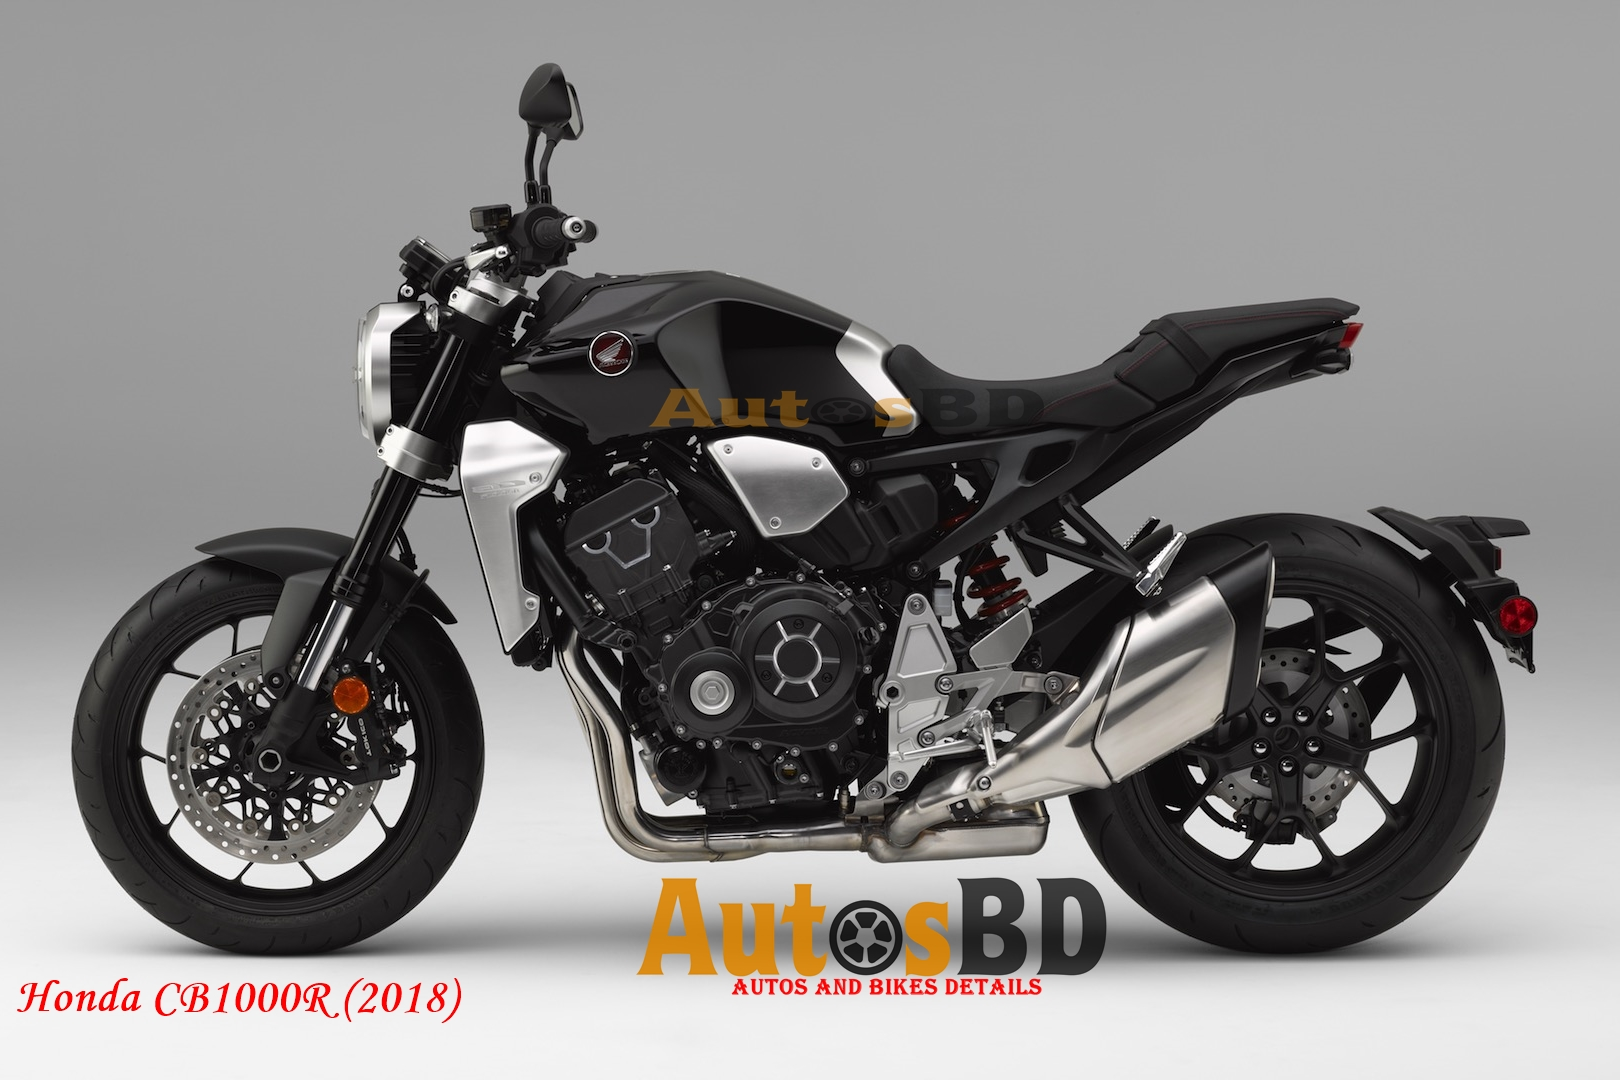 Honda Cb1000rr 2018 >> Honda CB1000R (2018) Specification, Price in India, Top Speed, Mileage & Review